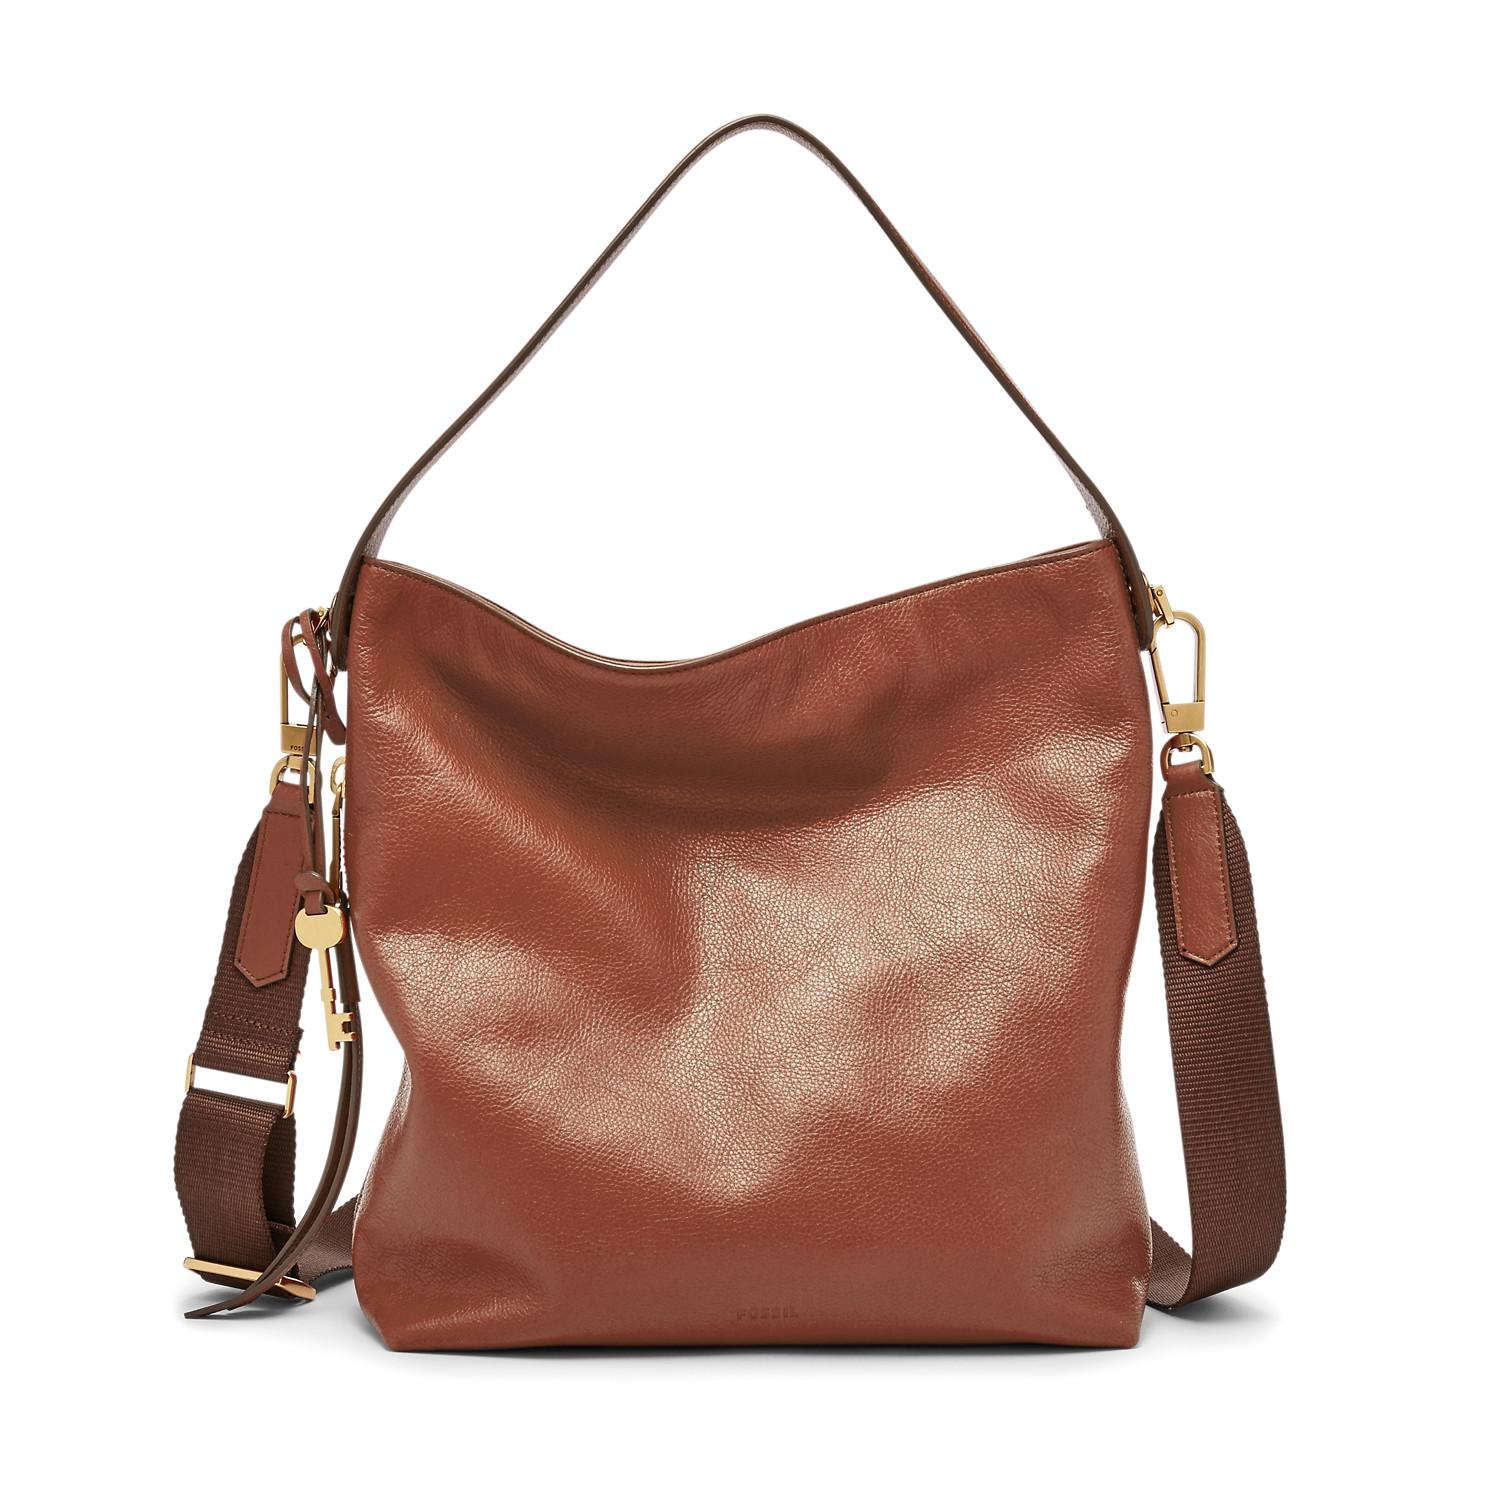 Fossil Maya Hobo - Crossbody Brown Leather - Tas Wanita - ZB6979-200 - VC